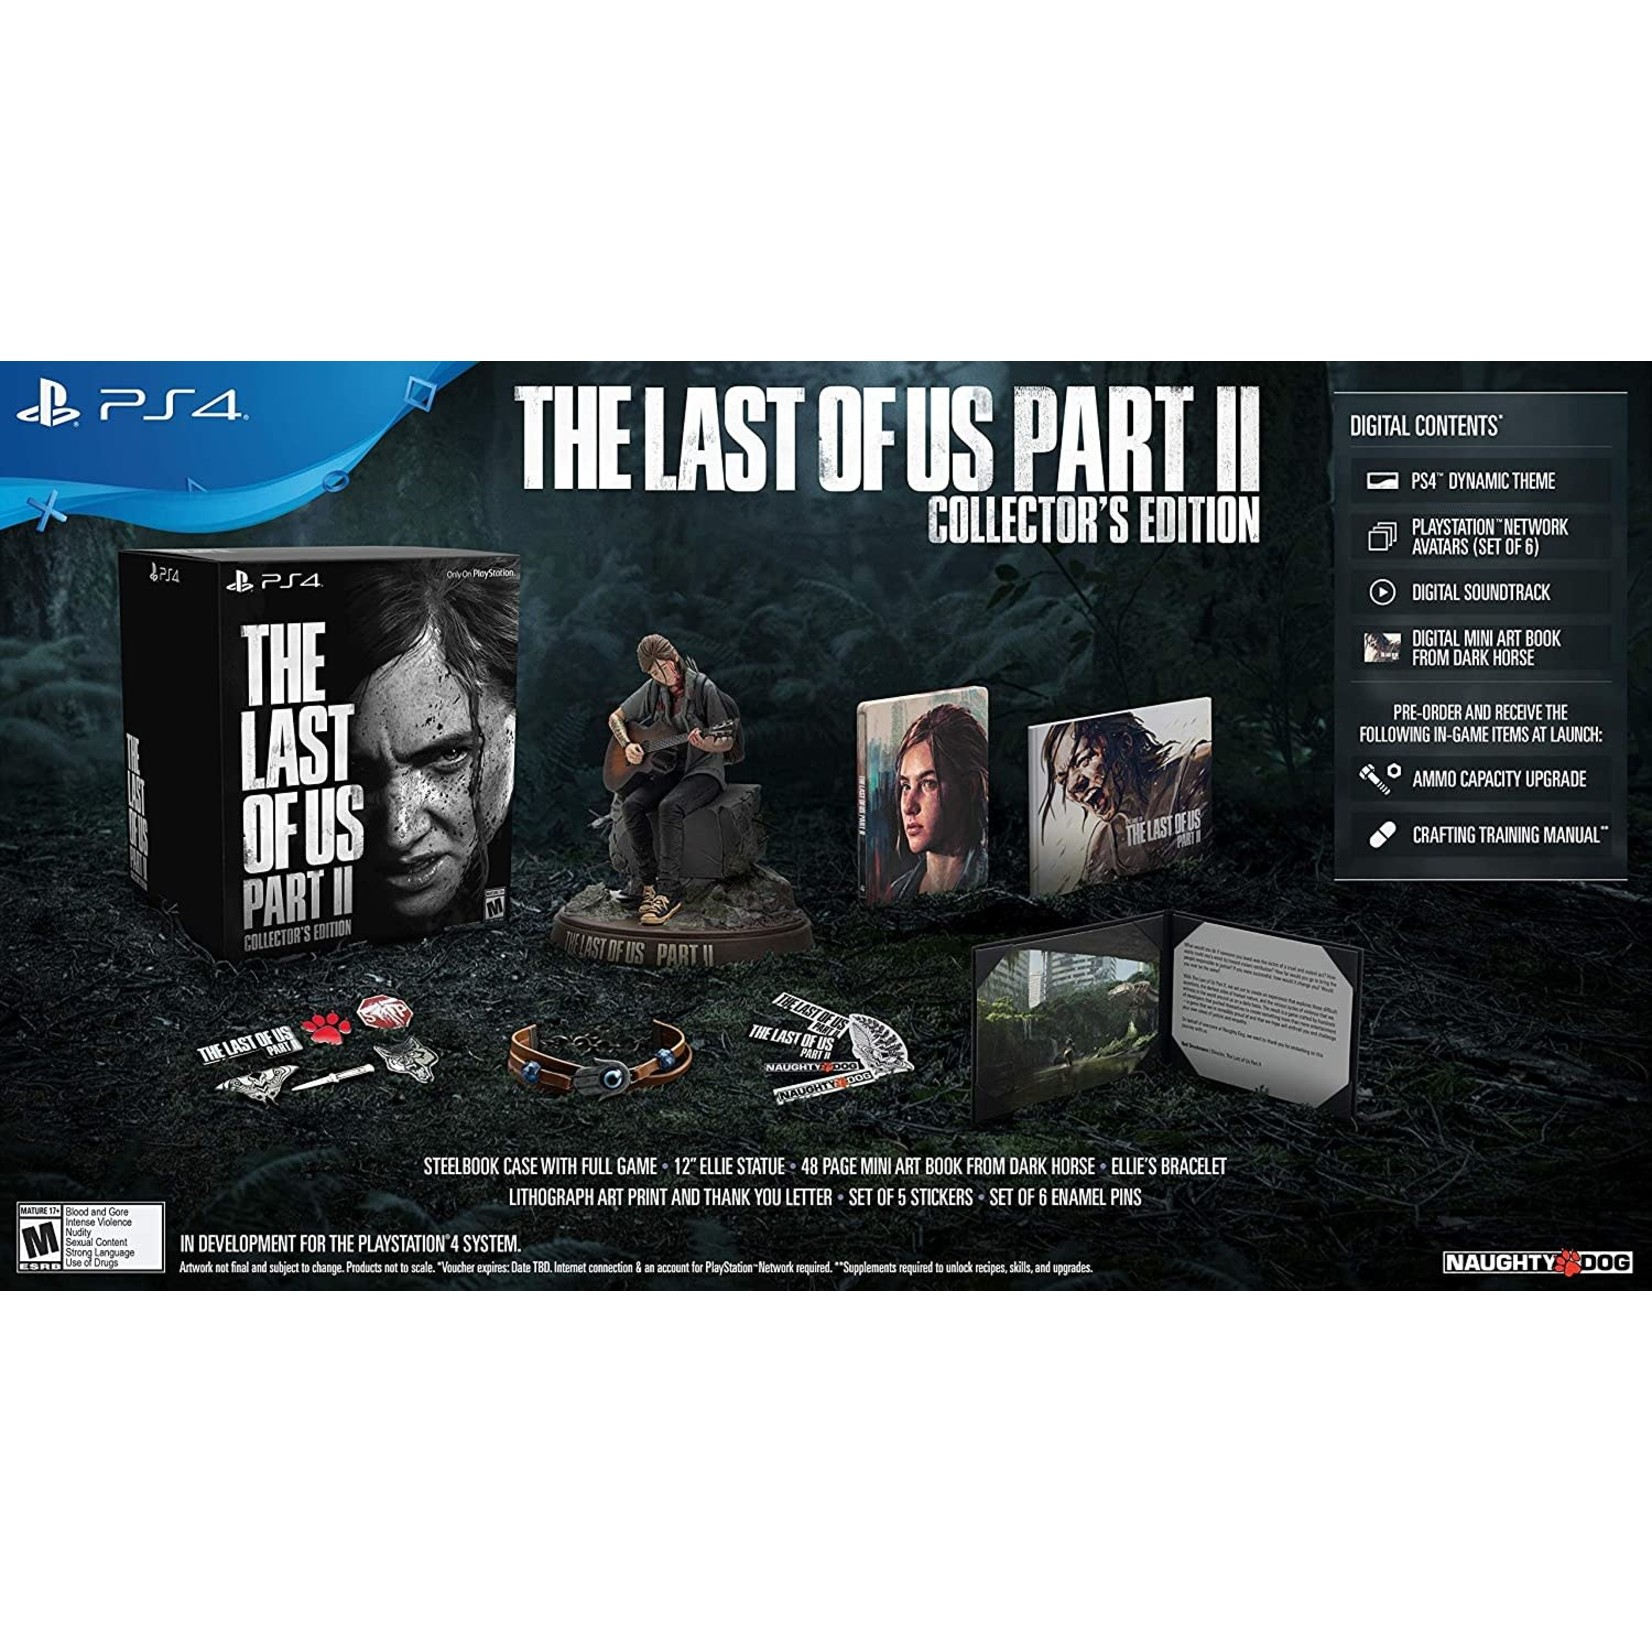 PS4-The Last of Us Part II Collector's Edition